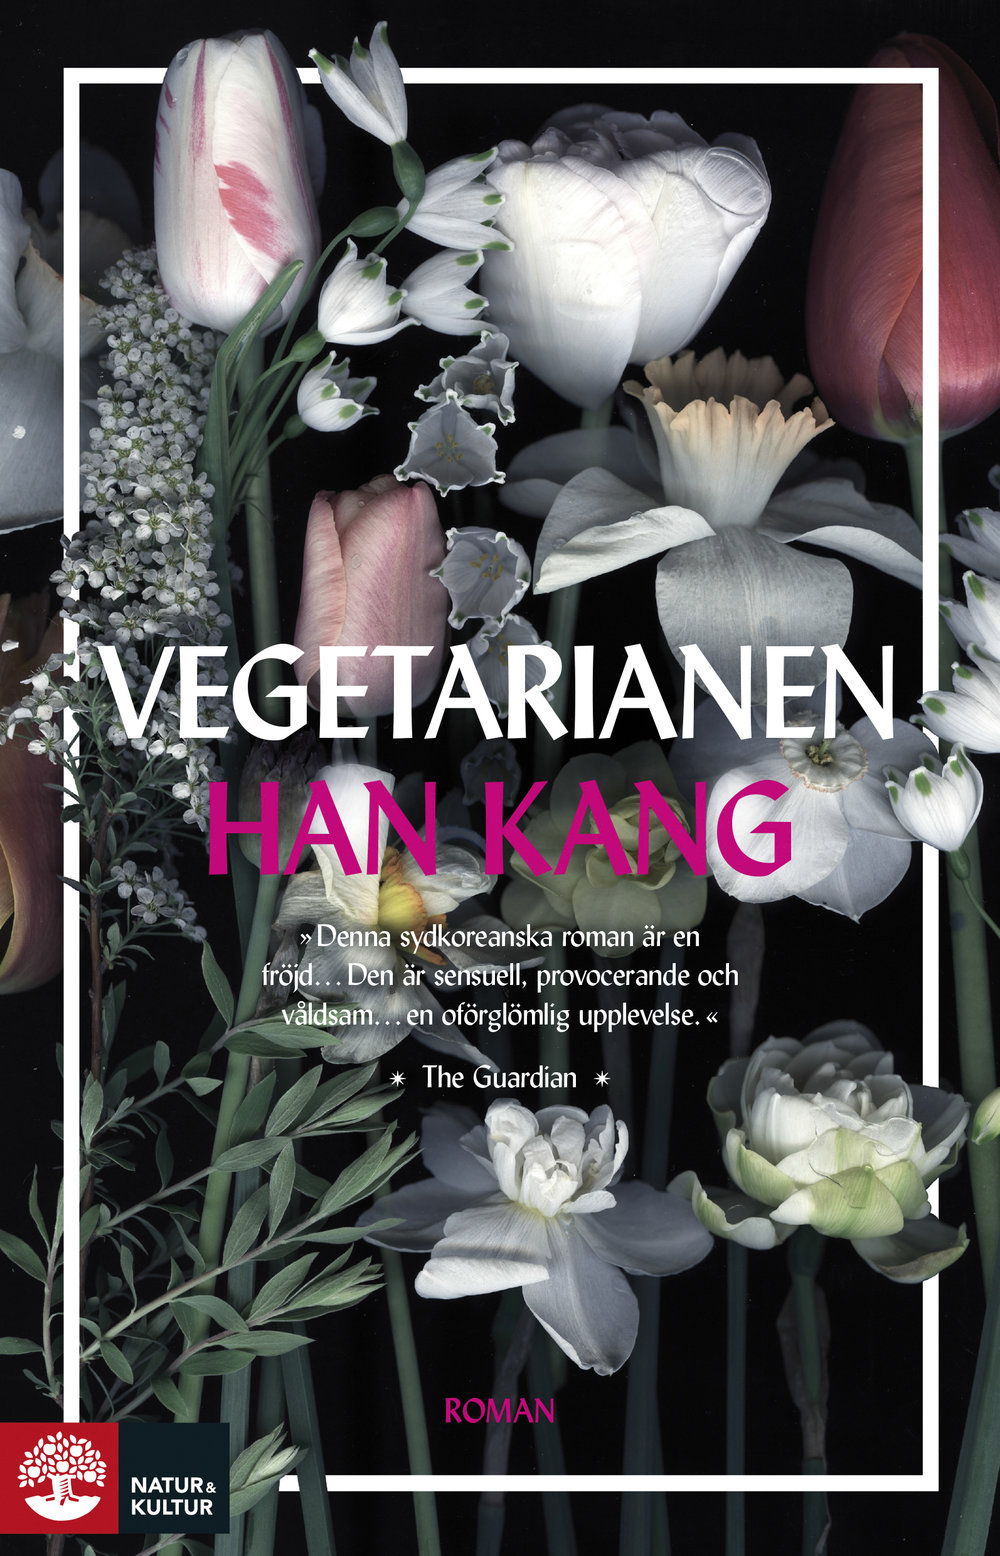 Copy of Vegetarianen